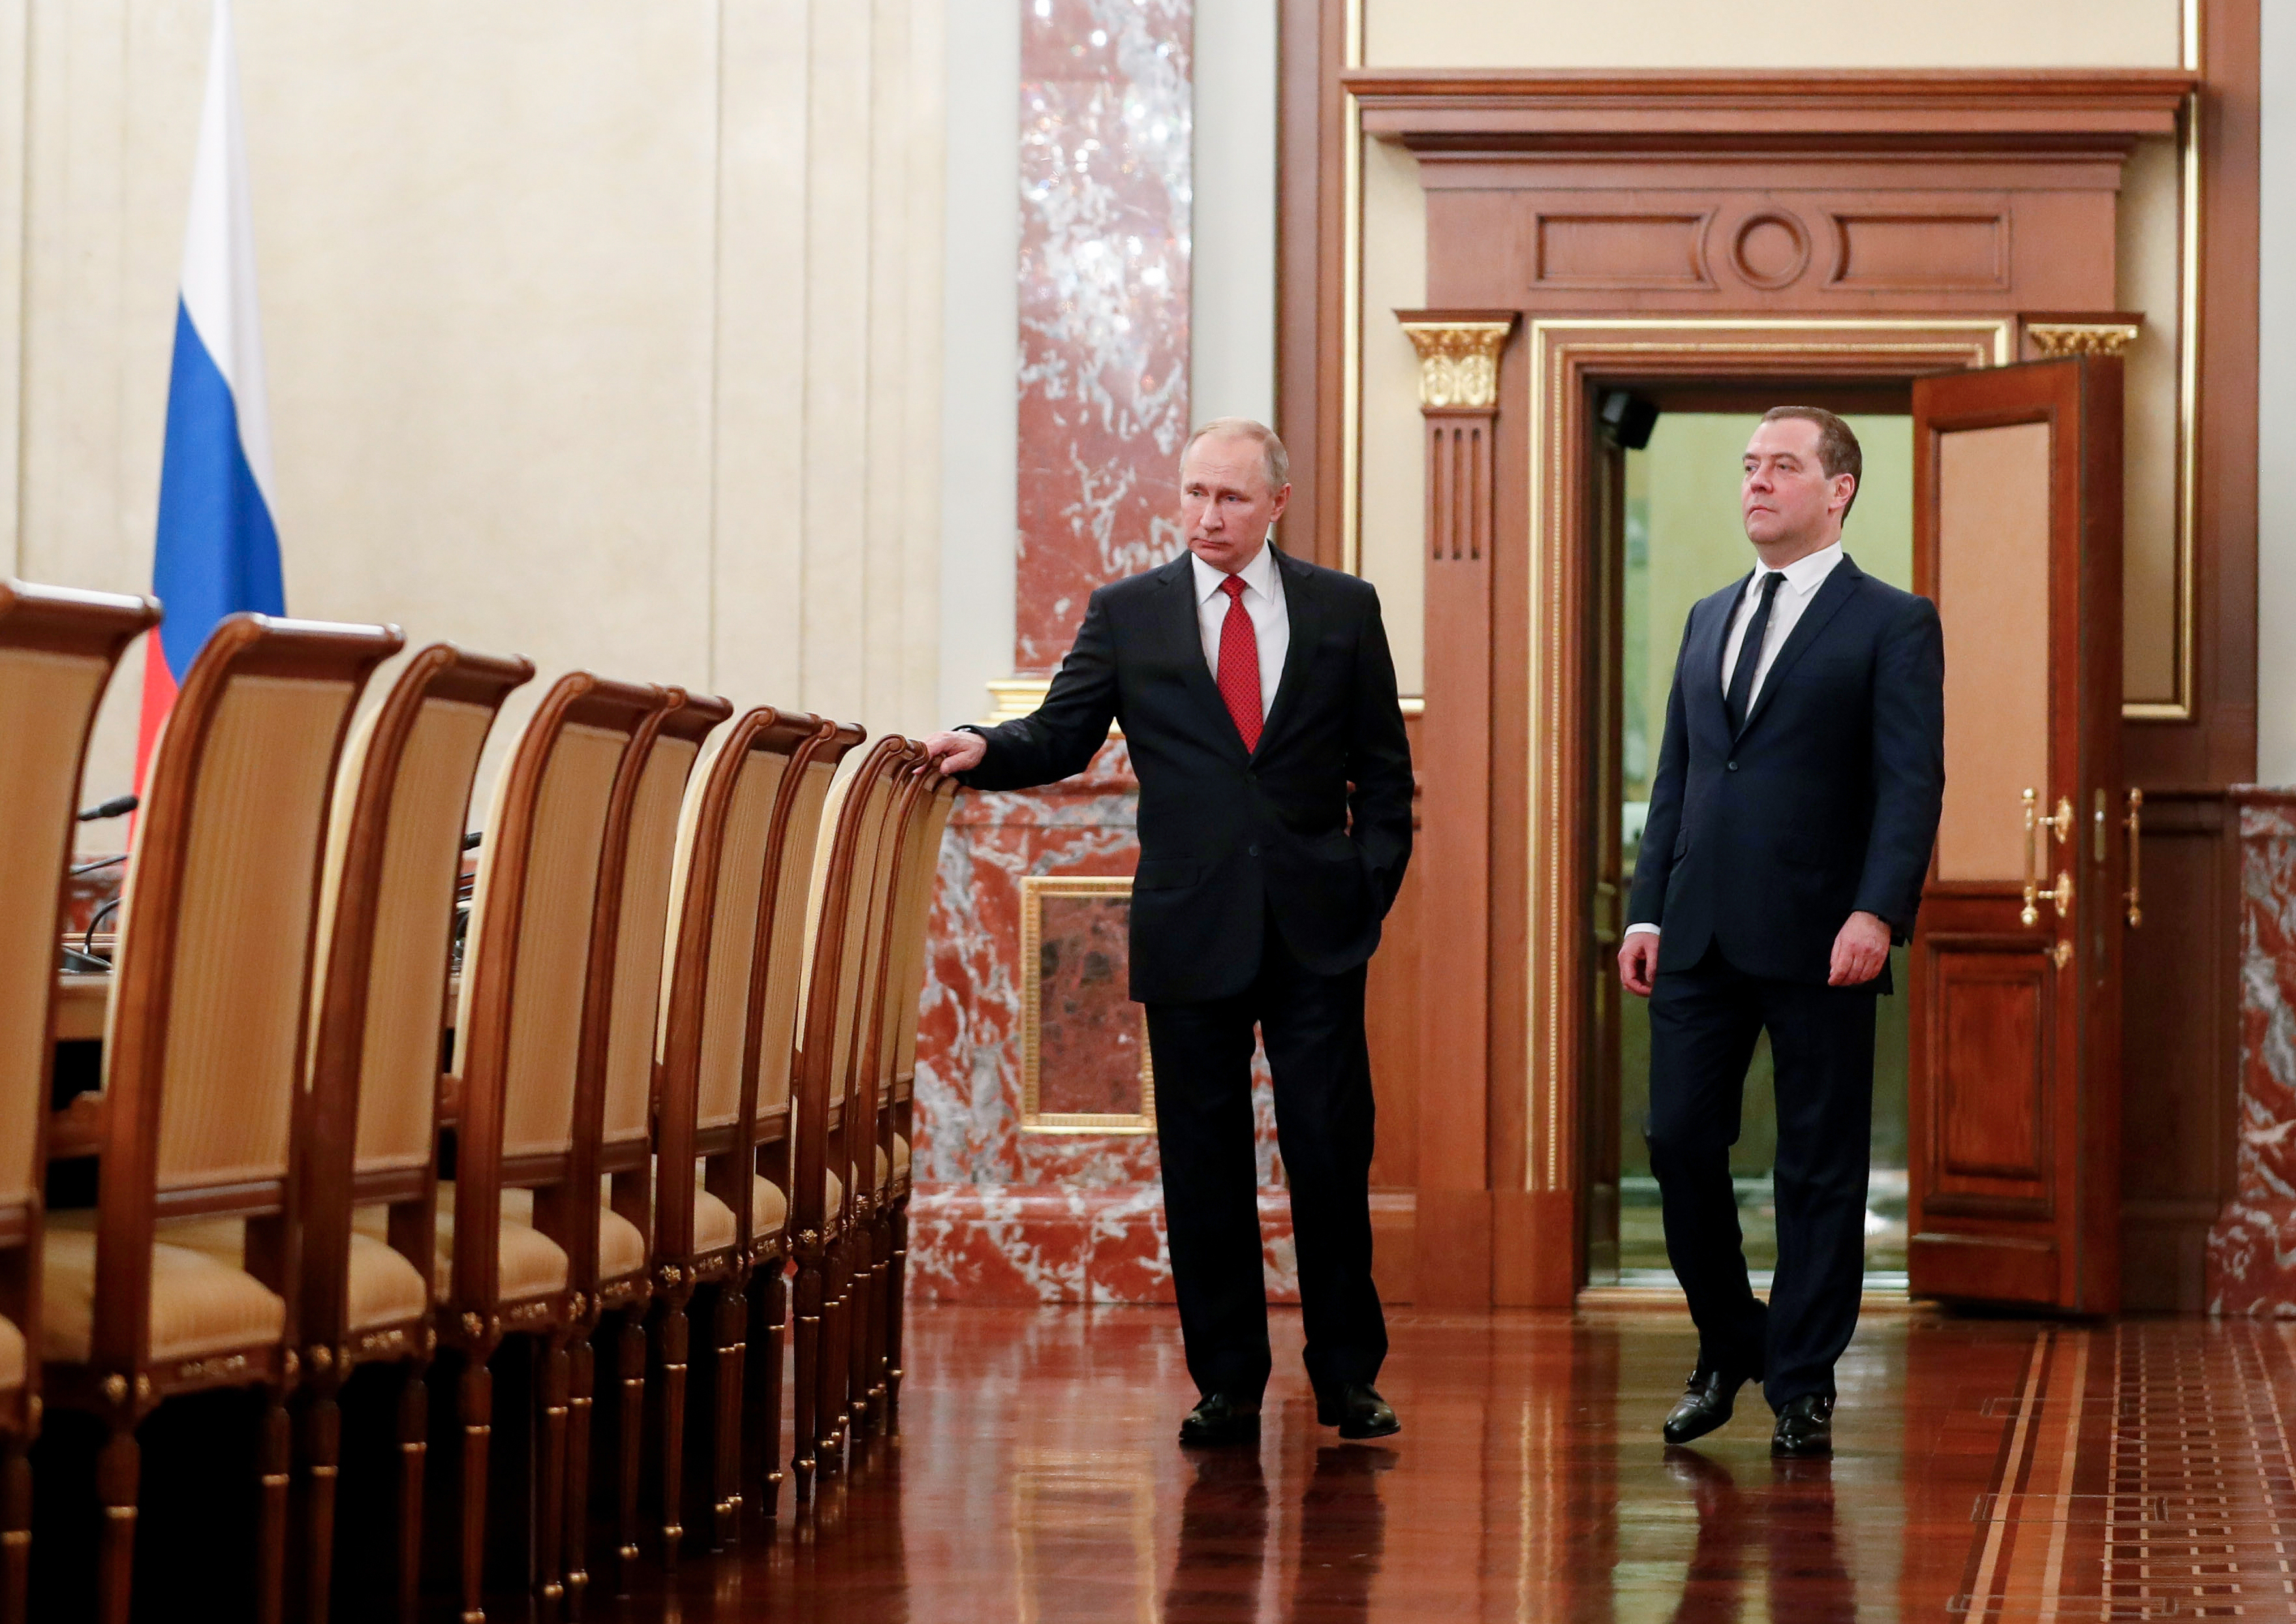 Russian President Vladimir Putin, right, and Russian Prime Minister Dmitry Medvedev talk to each other prior to a cabinet meeting in Moscow, Russia, Wednesday, Jan. 15, 2020.